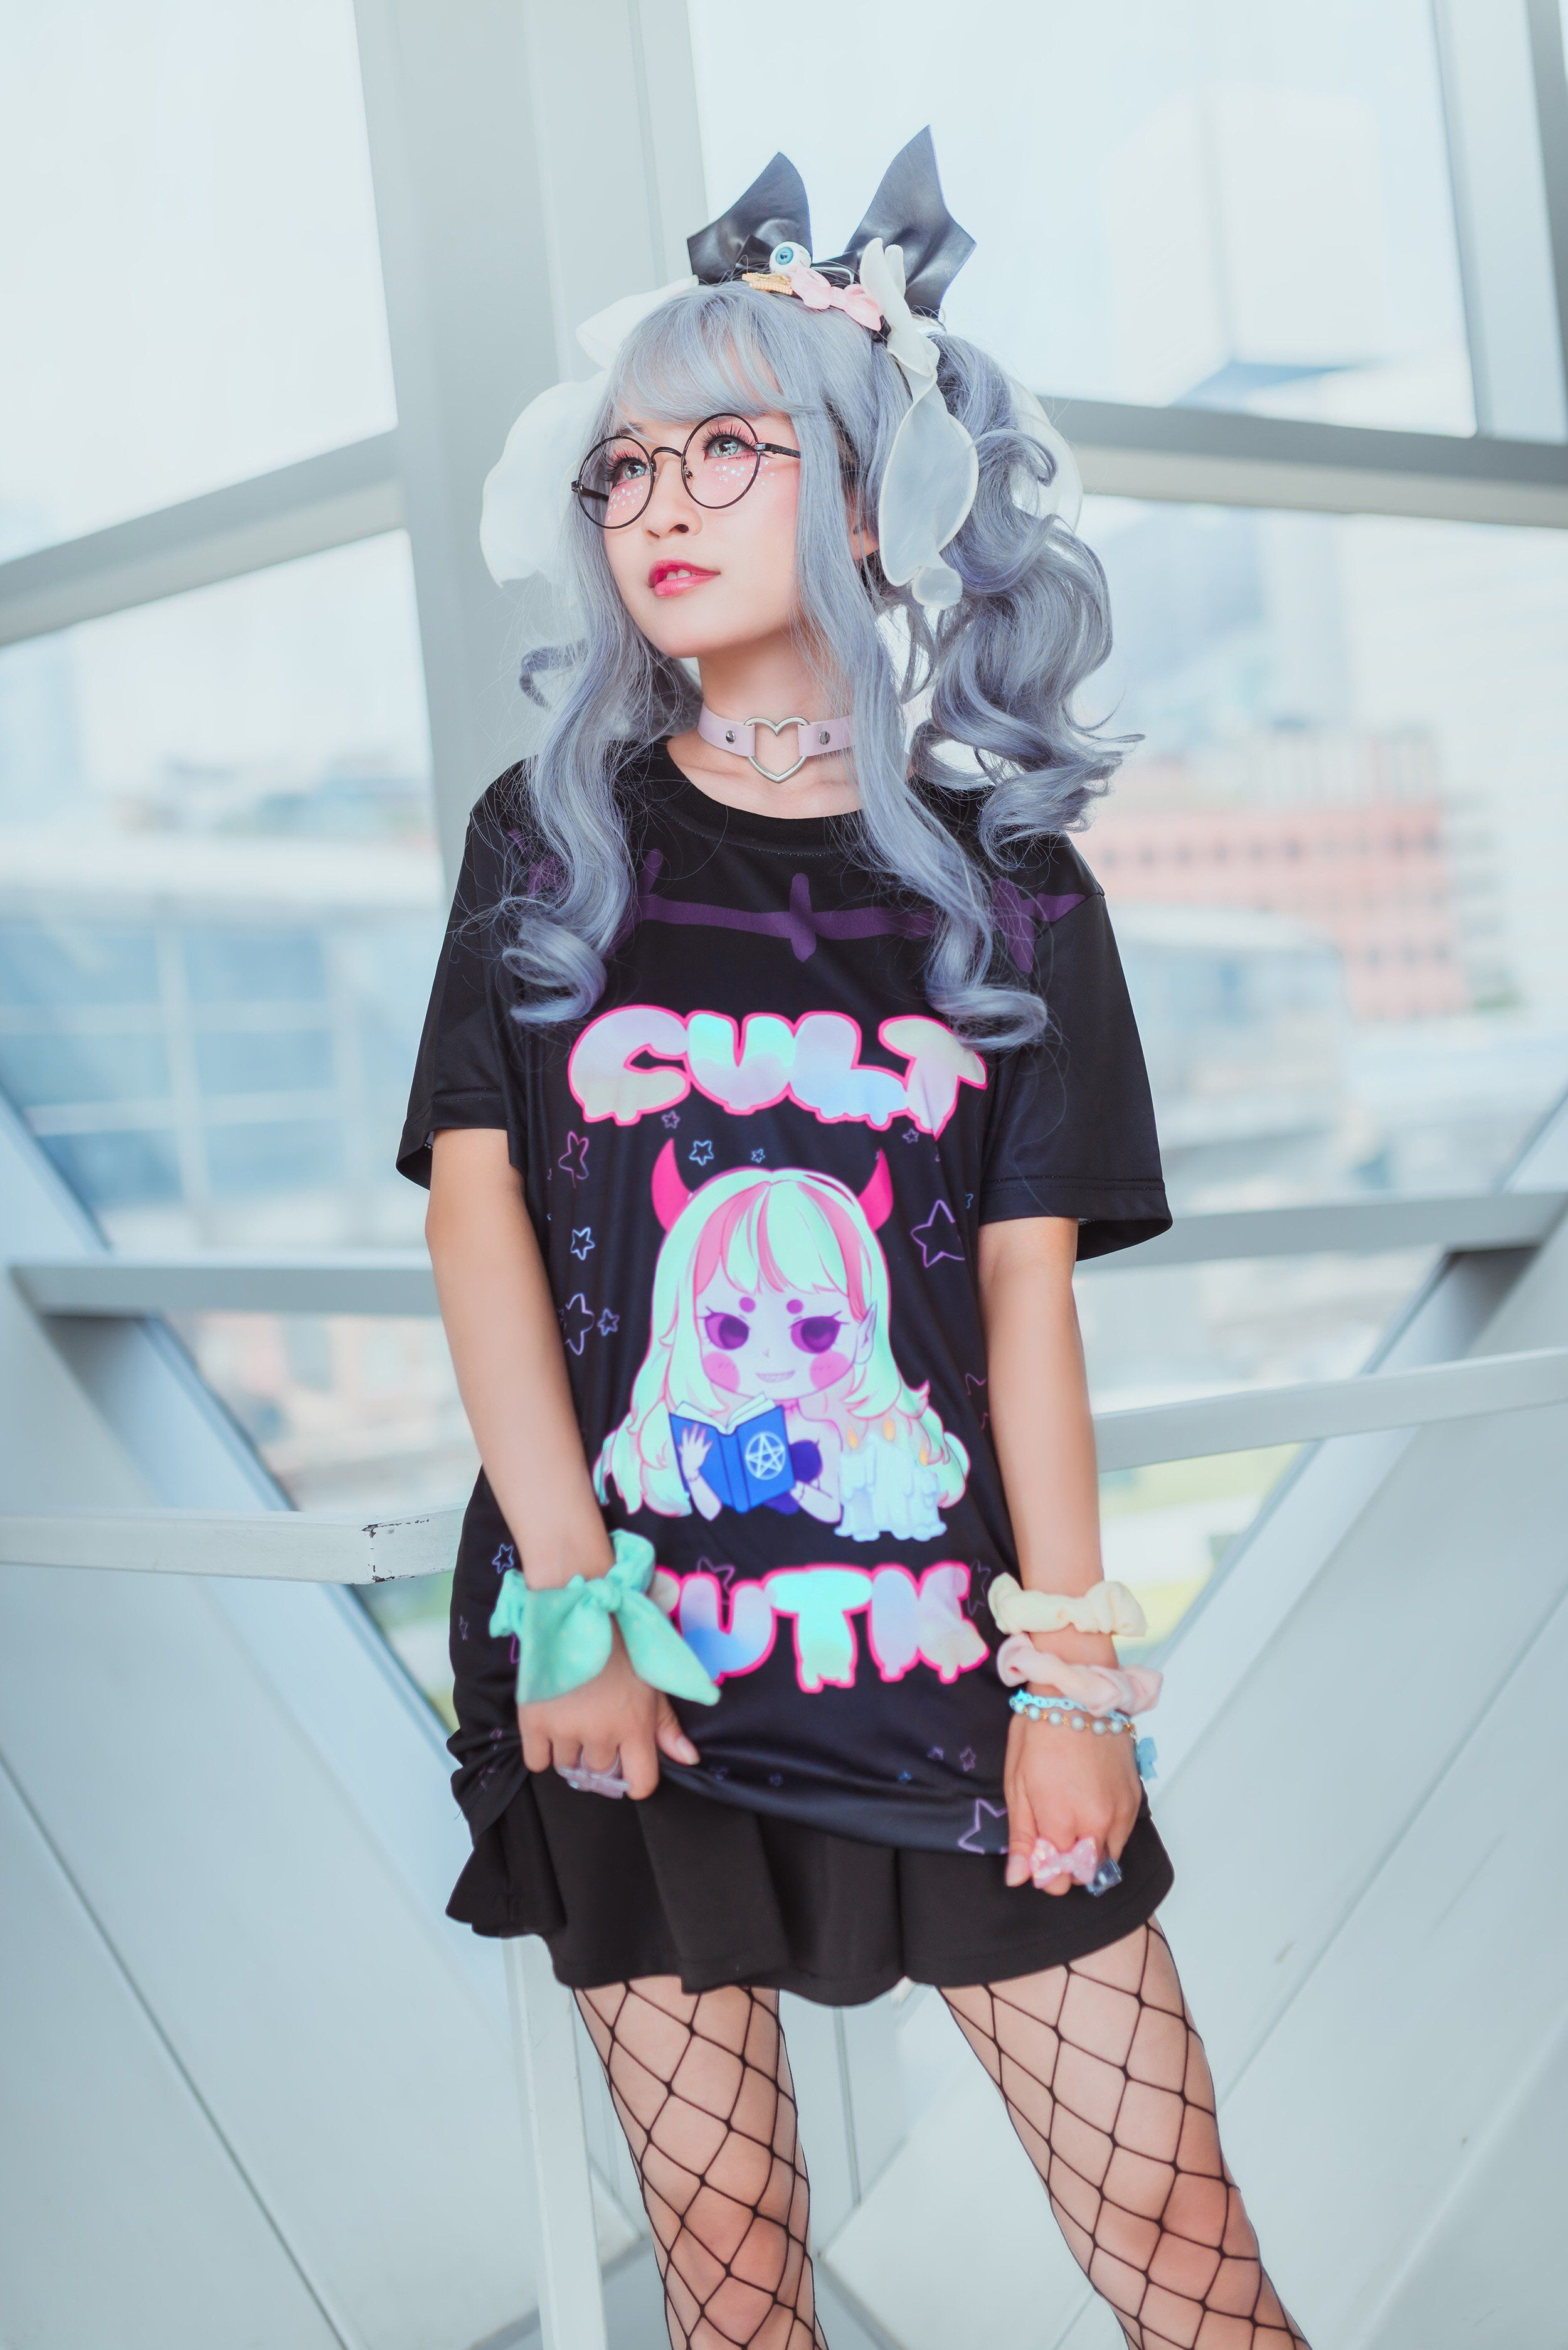 1a45e1a60 CULT CUTIE Tee by Fawnbomb Creepy Cute Yami kawaii Harajuku demon girl  Witchy Occult Pastel Goth